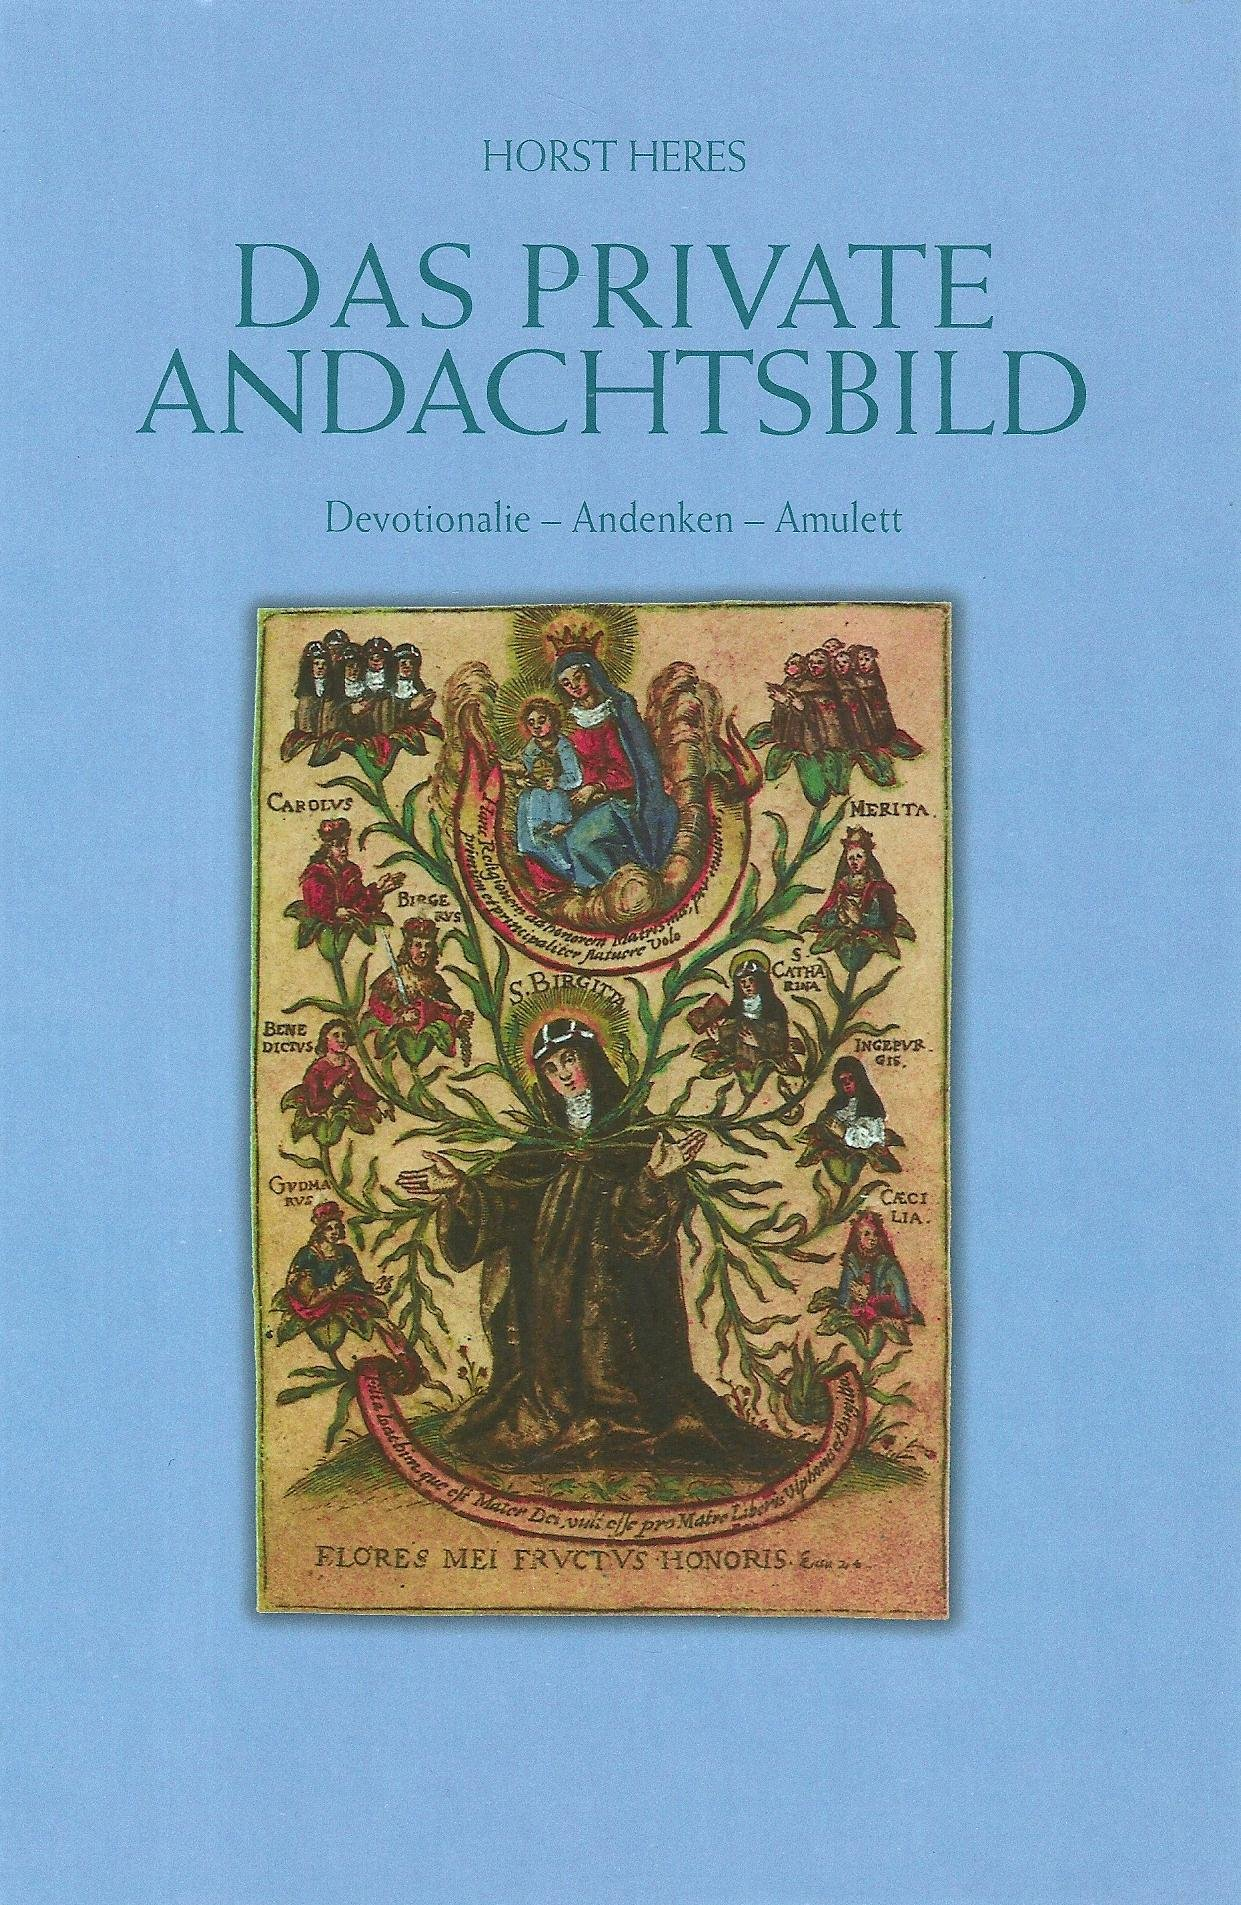 Das private Andachtsbild: Devotionale Andenken Amulett